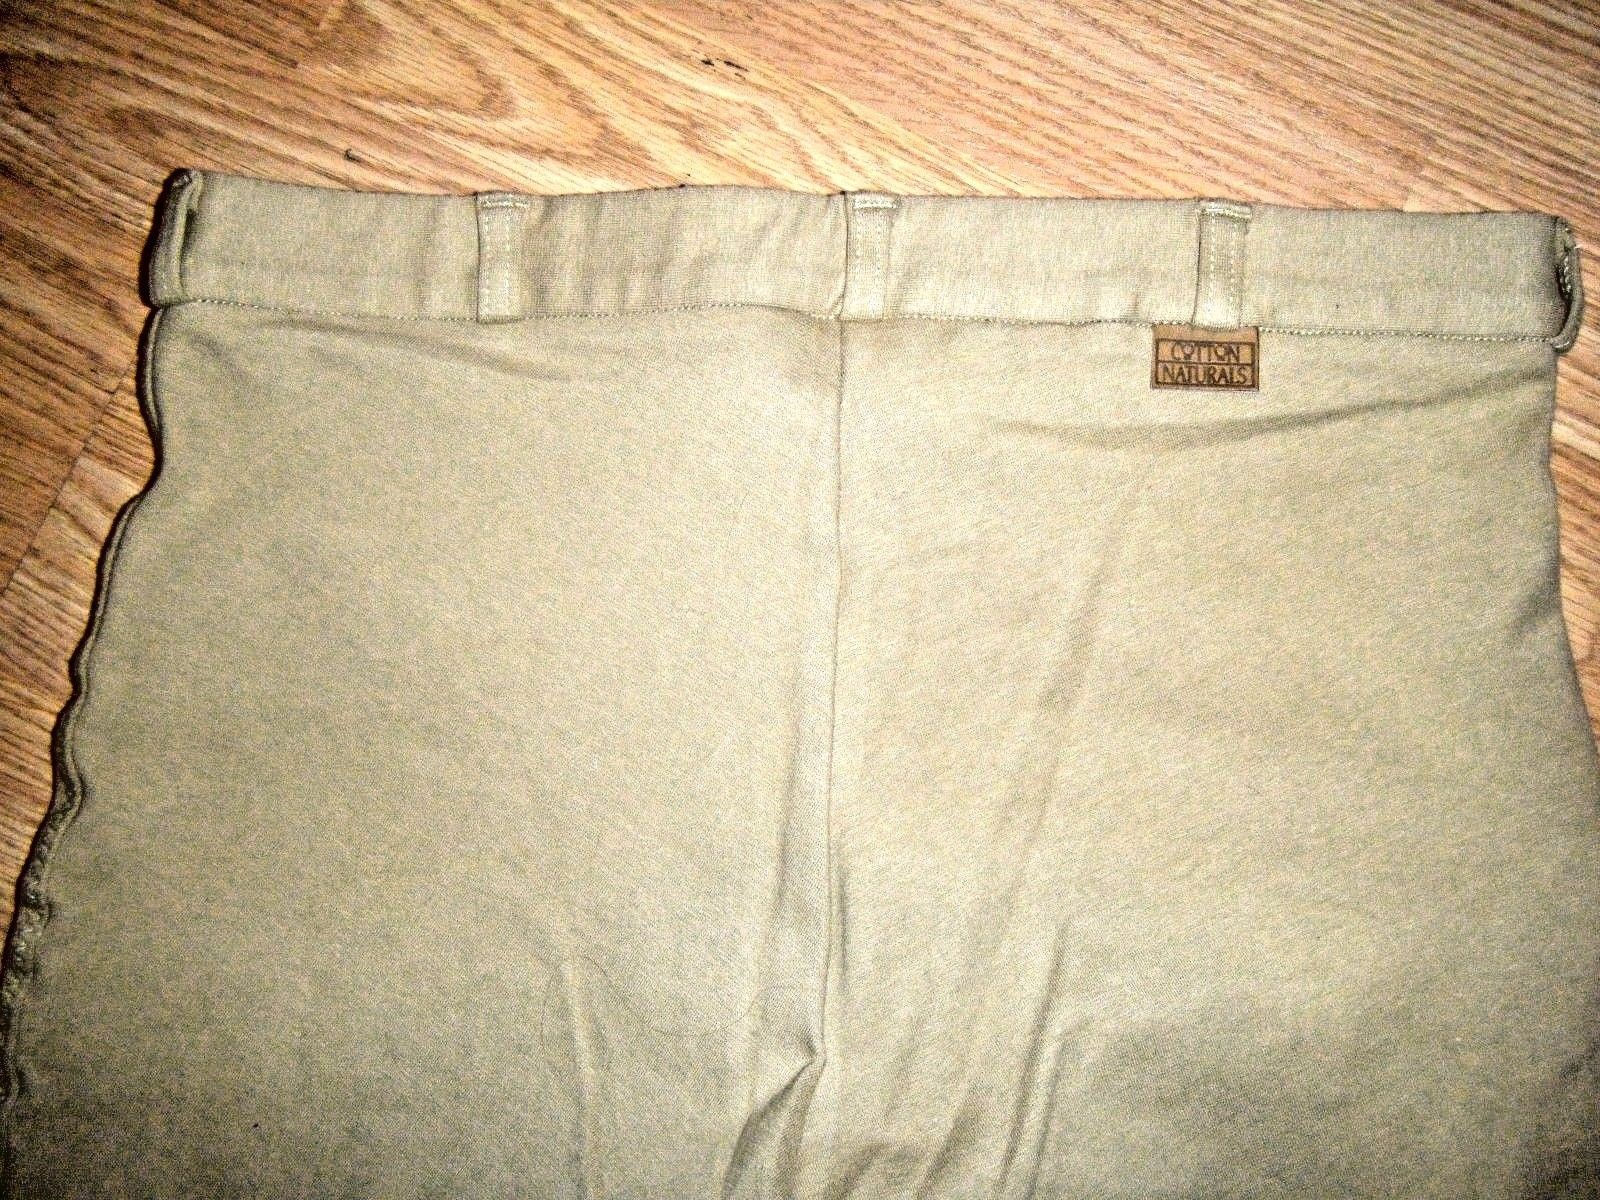 ON COURSE STRETCH TAN RIDING PANTS SIZE 34